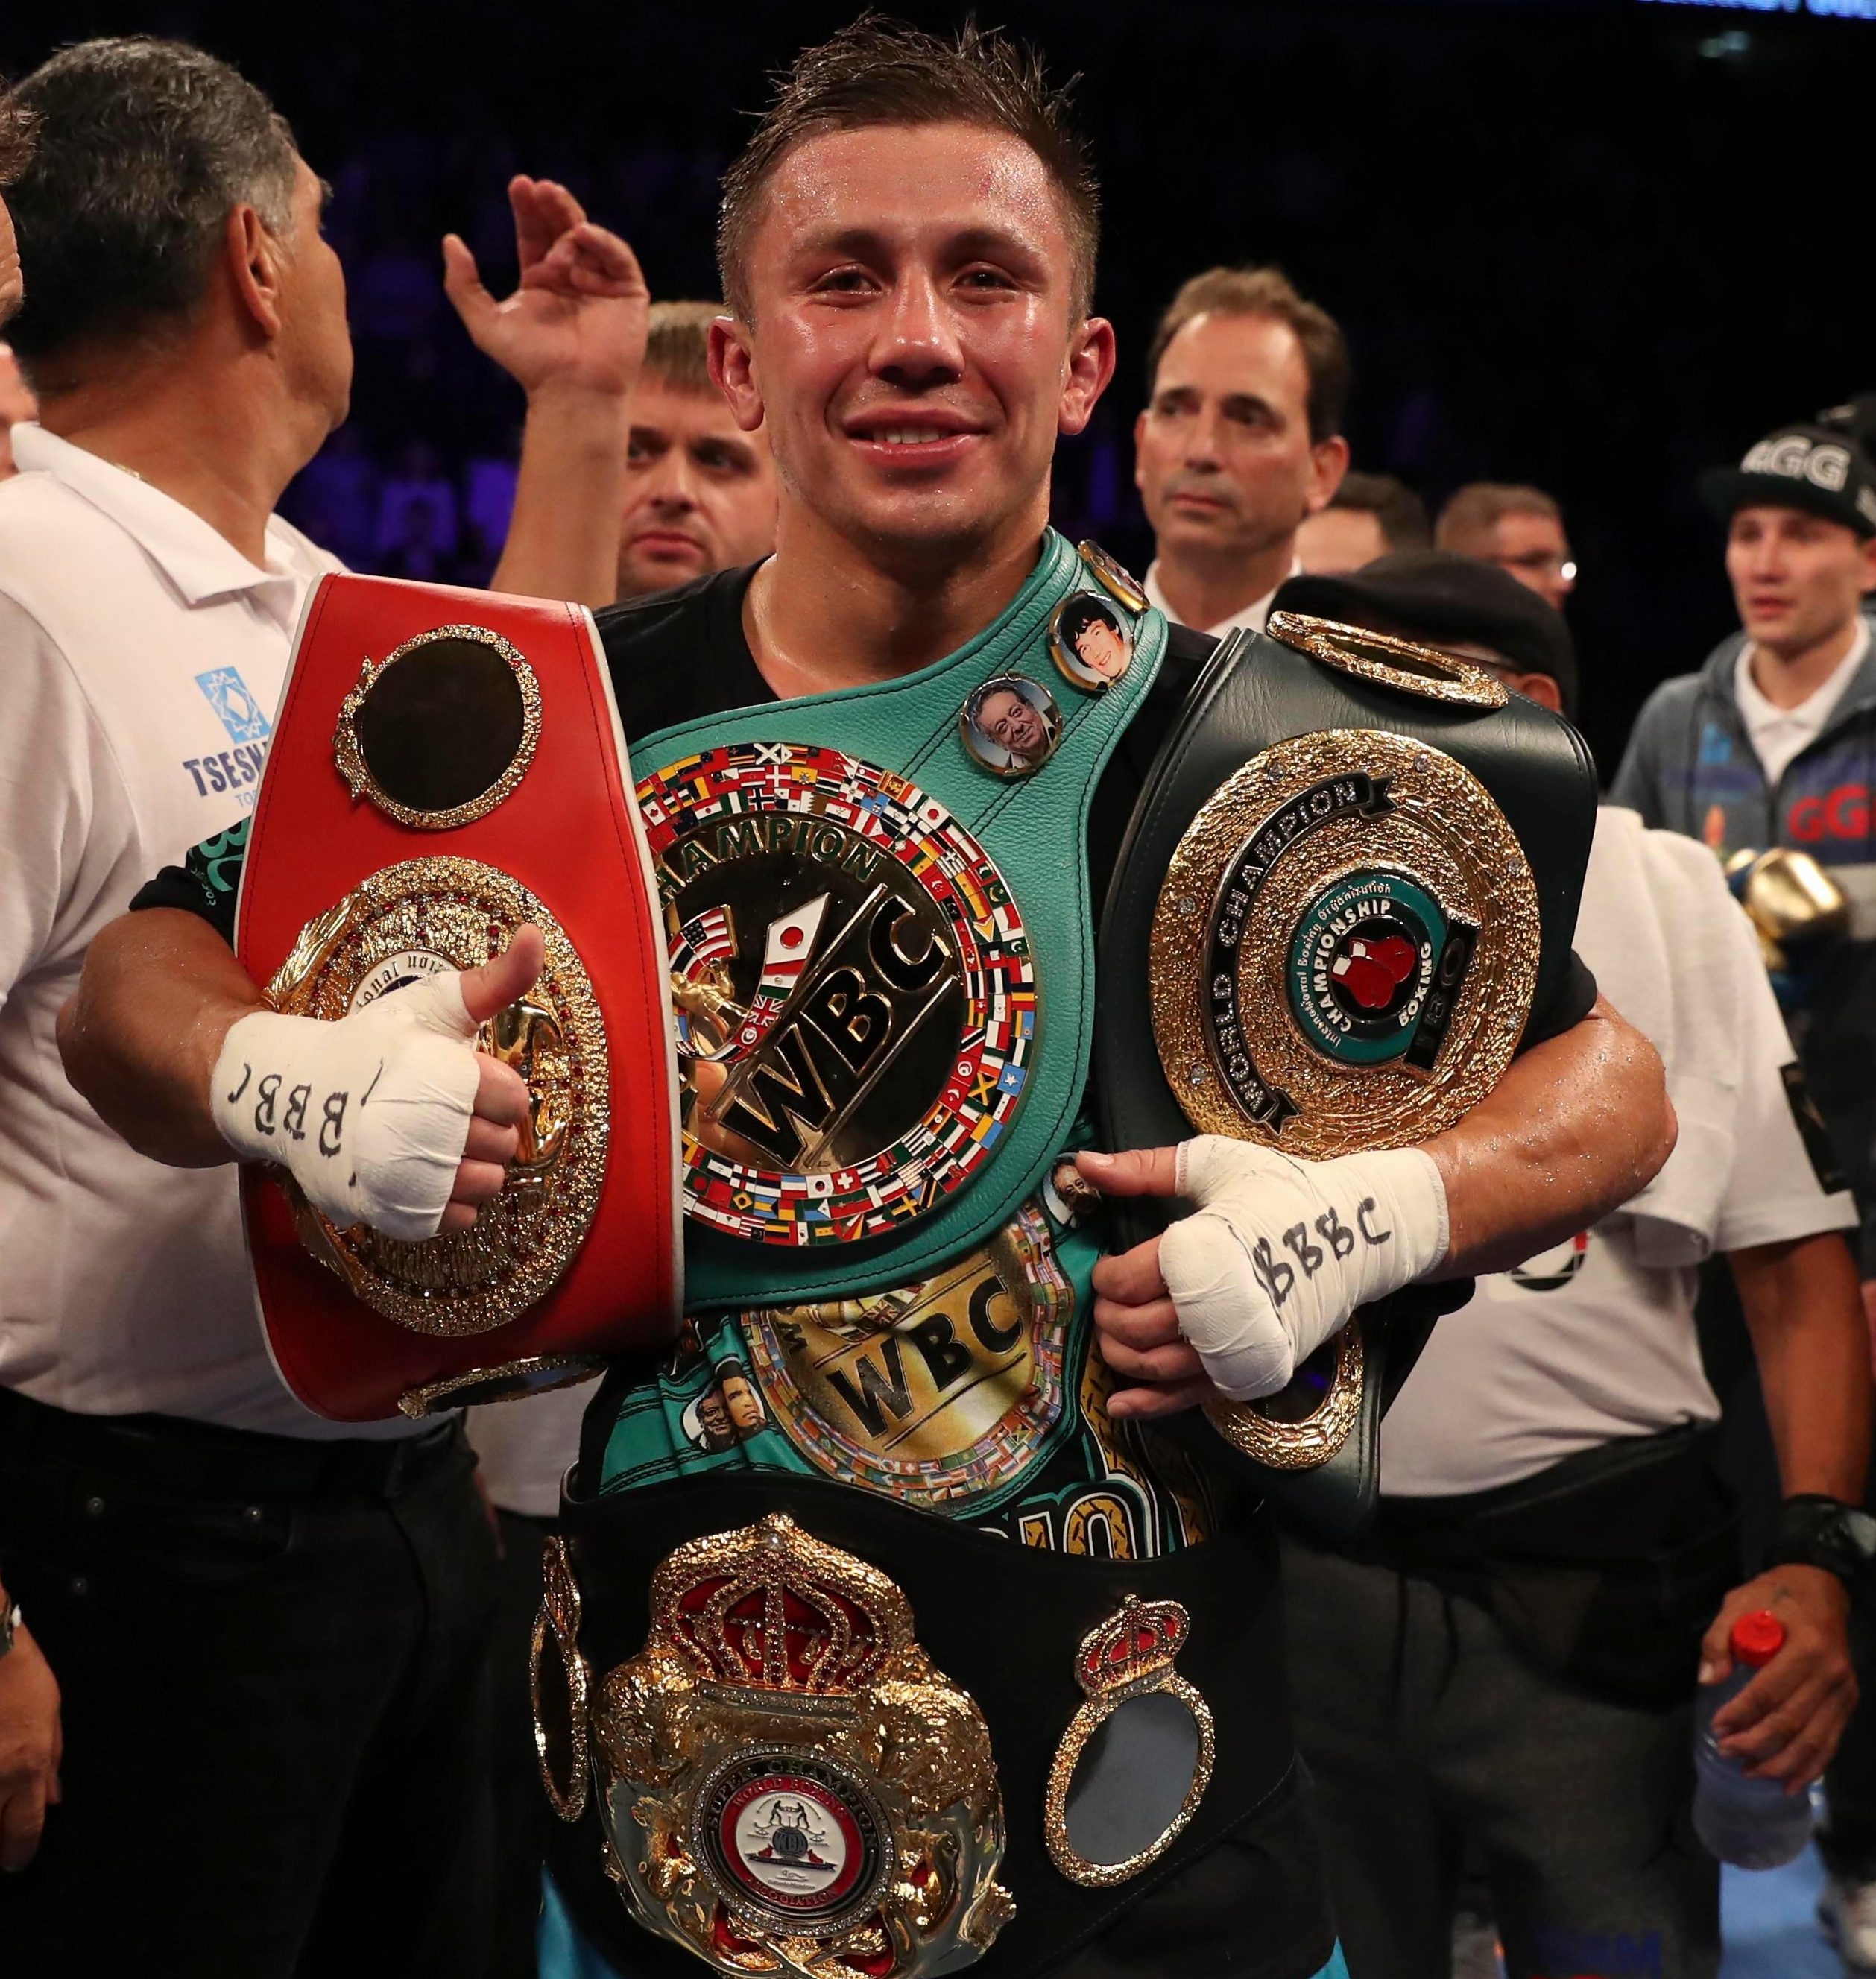 Gennady Golovkin could be stripped of his IBF middleweight world title